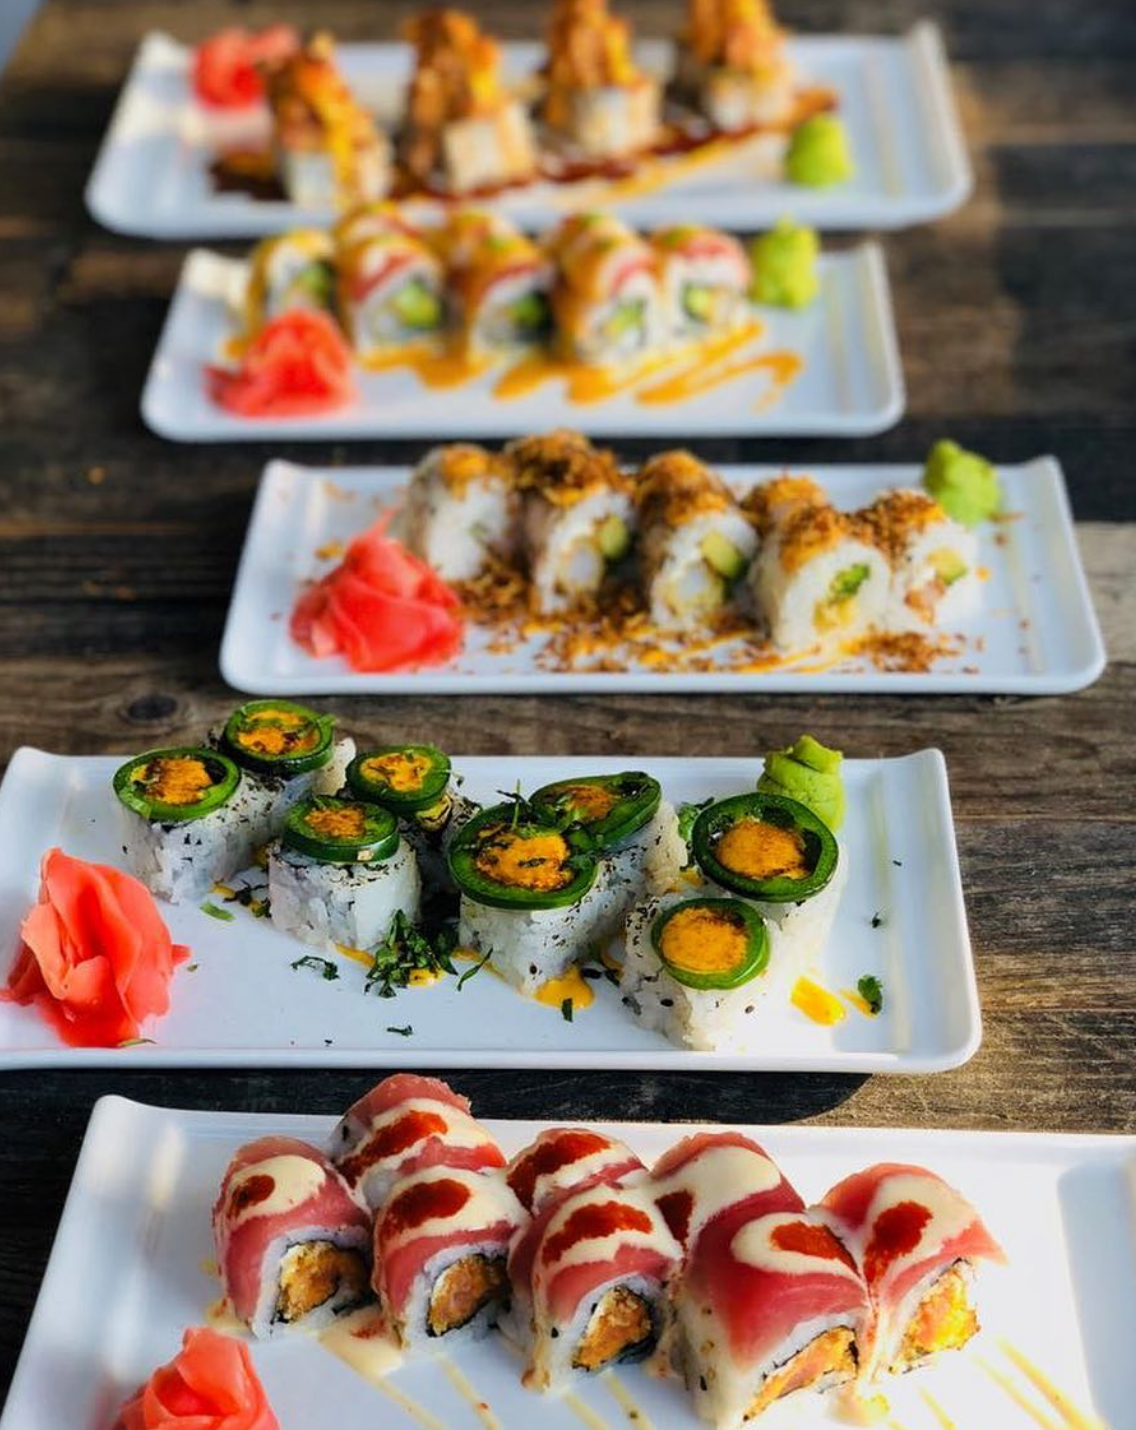 Jalapeño Roll at  Suchive